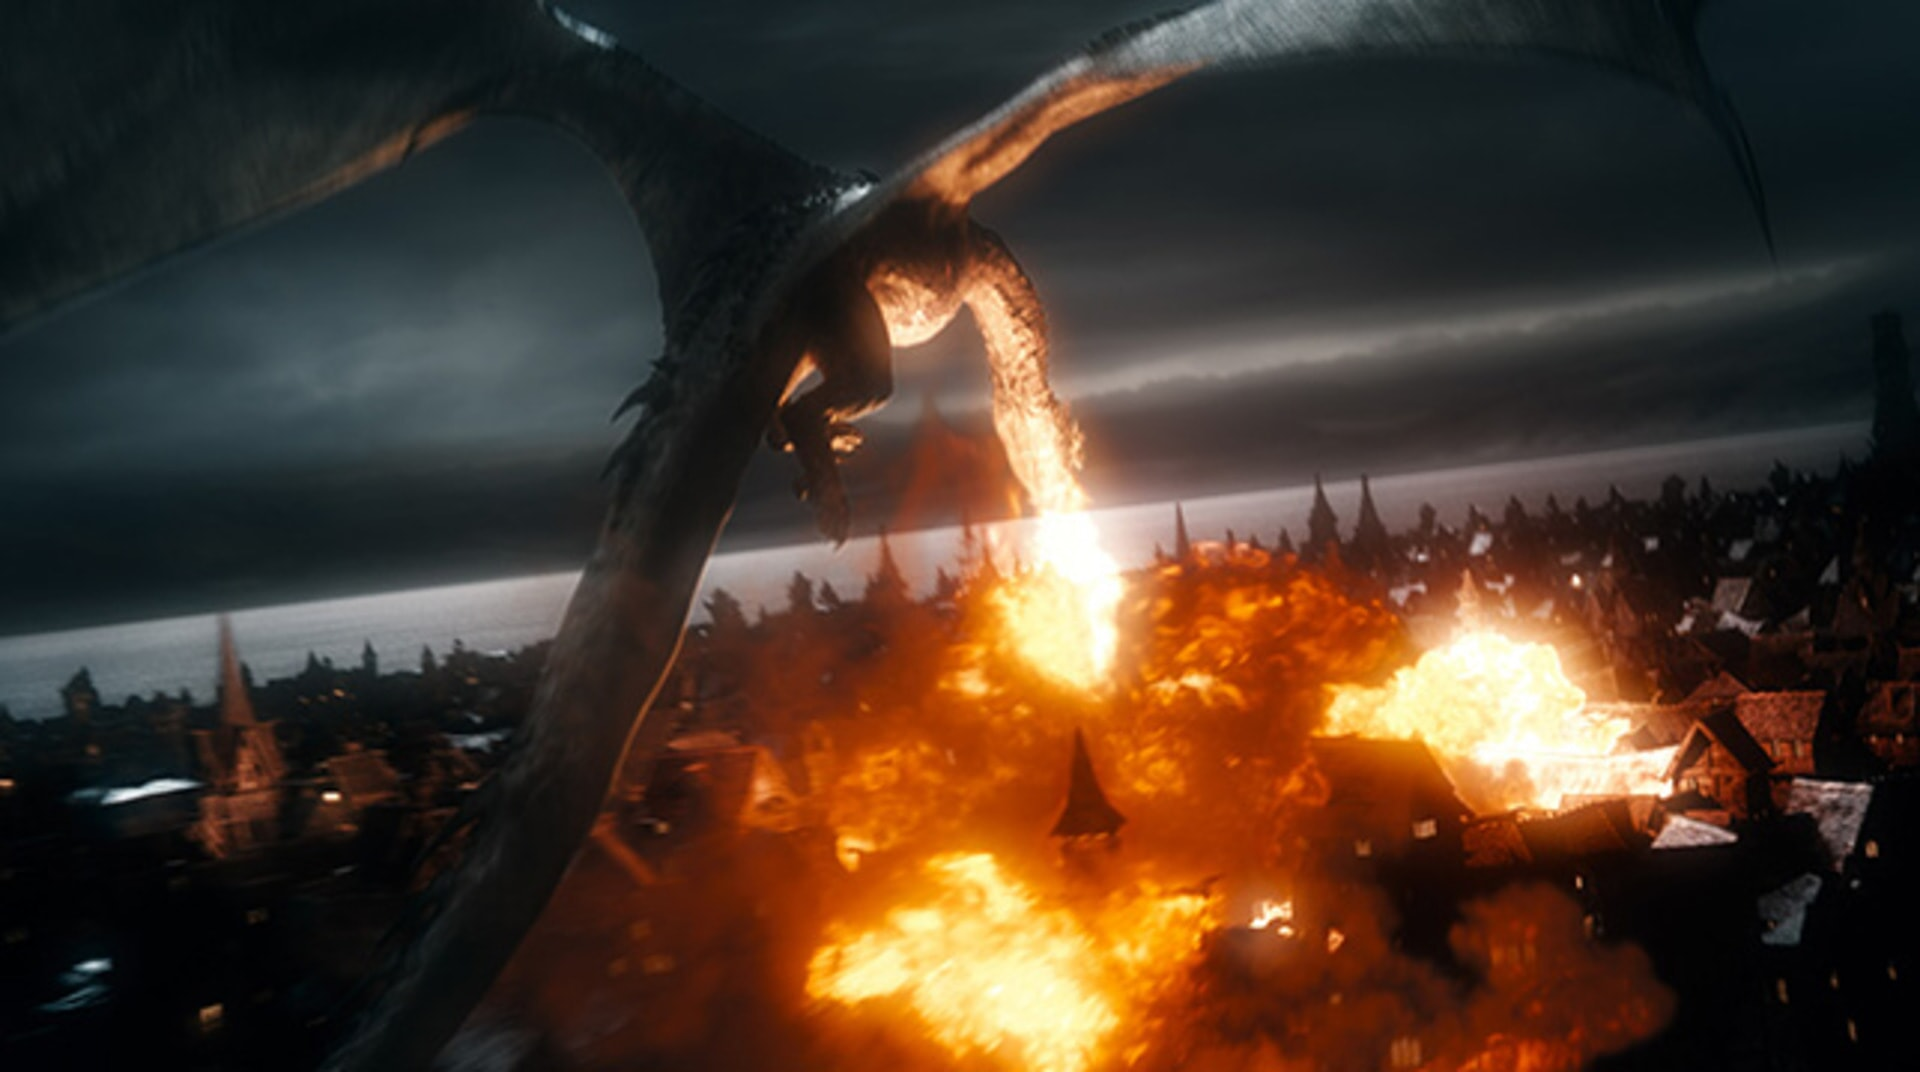 The Hobbit: The Battle of the Five Armies - Image 19